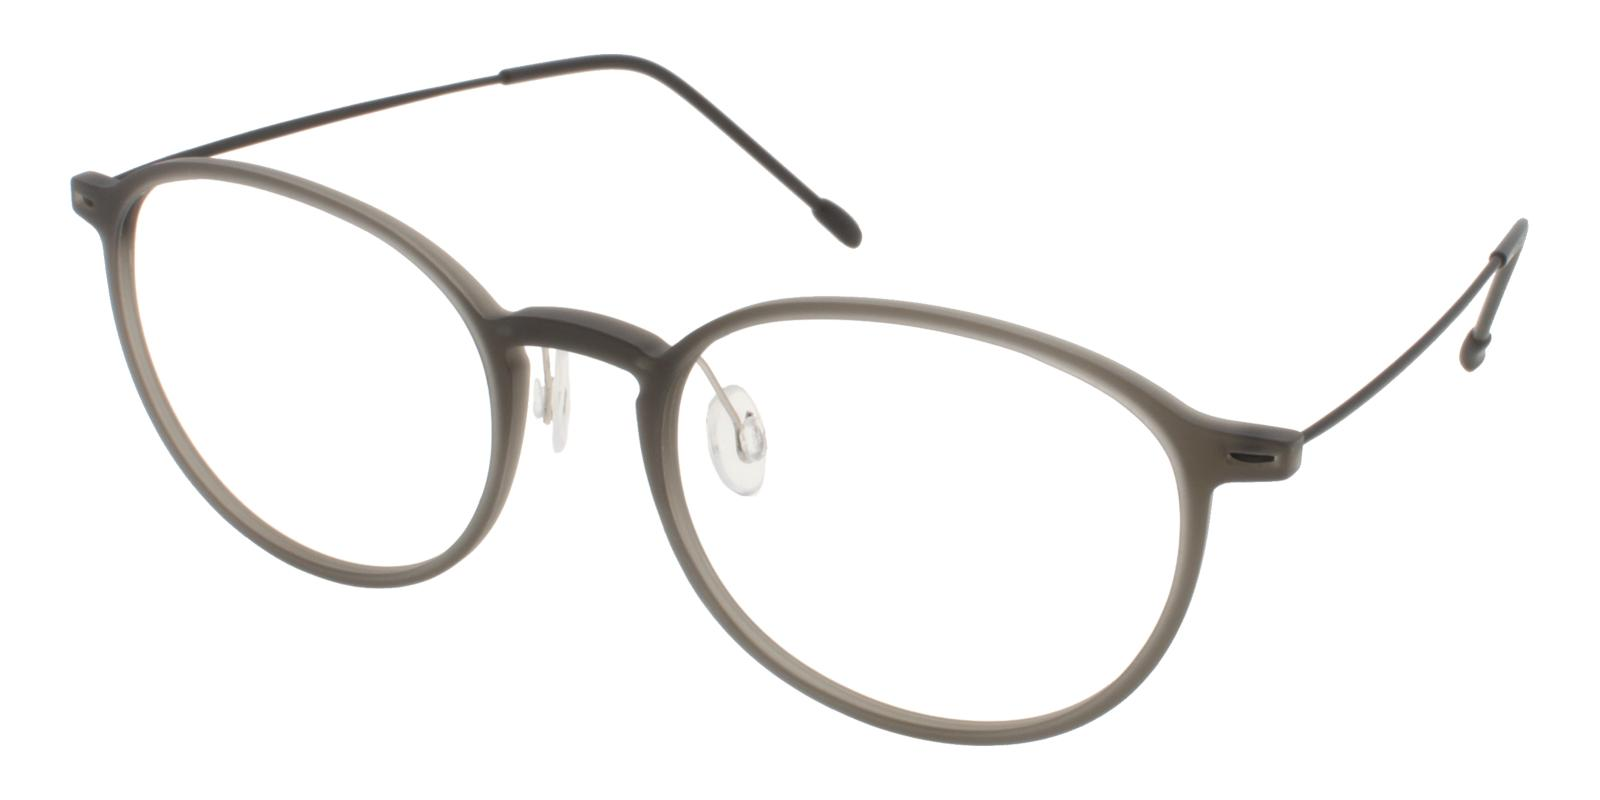 Gambia Gray Combination NosePads , Eyeglasses , Lightweight Frames from ABBE Glasses